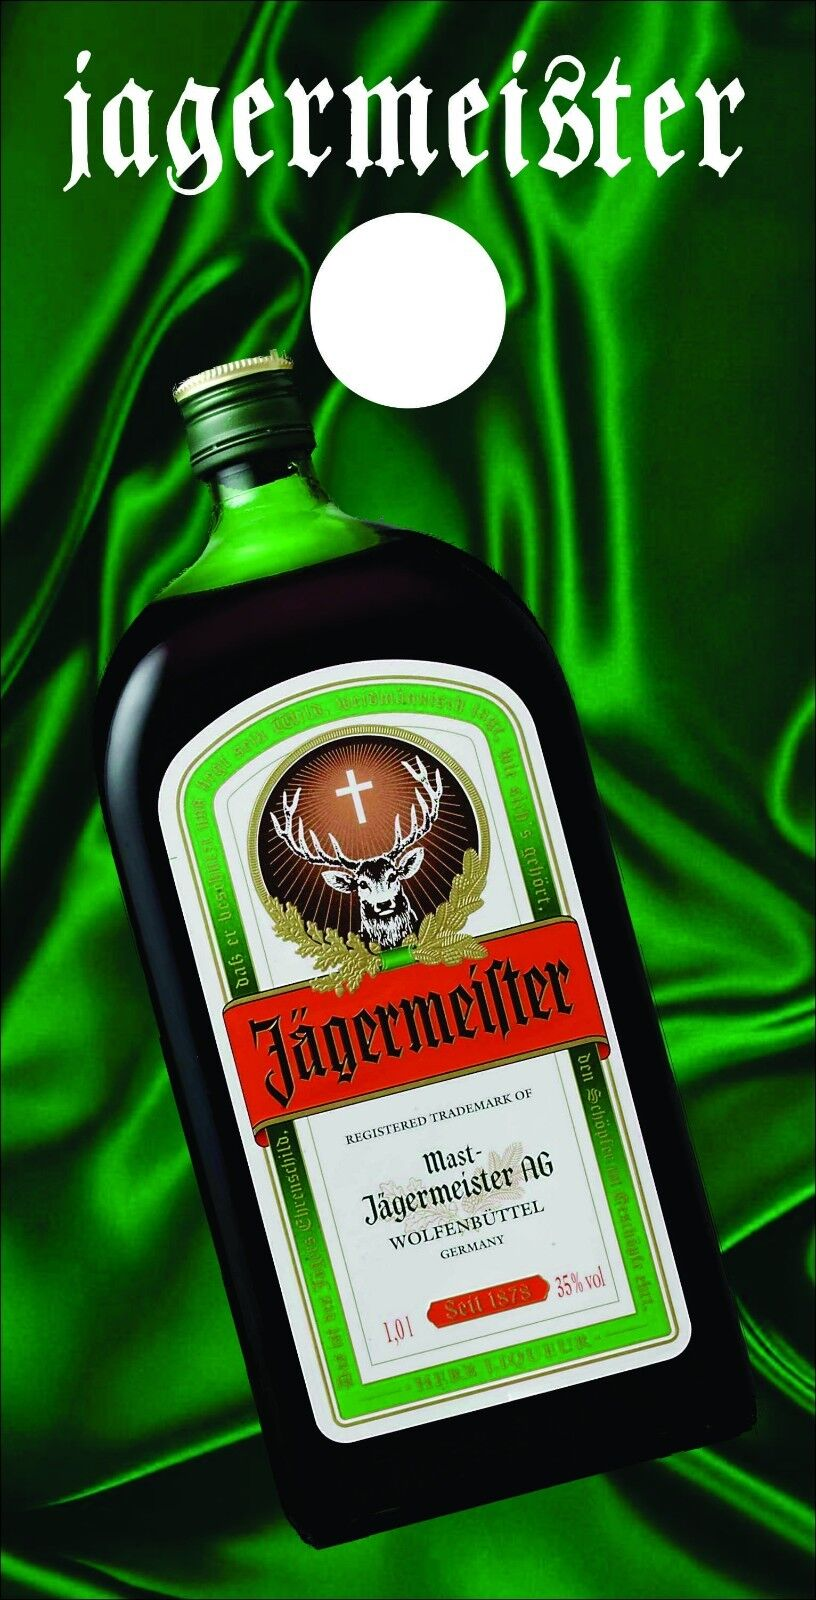 Corn Hole  Graphic- Jagermeister Bottle on Green Silk (Single Graphic)  authentic quality